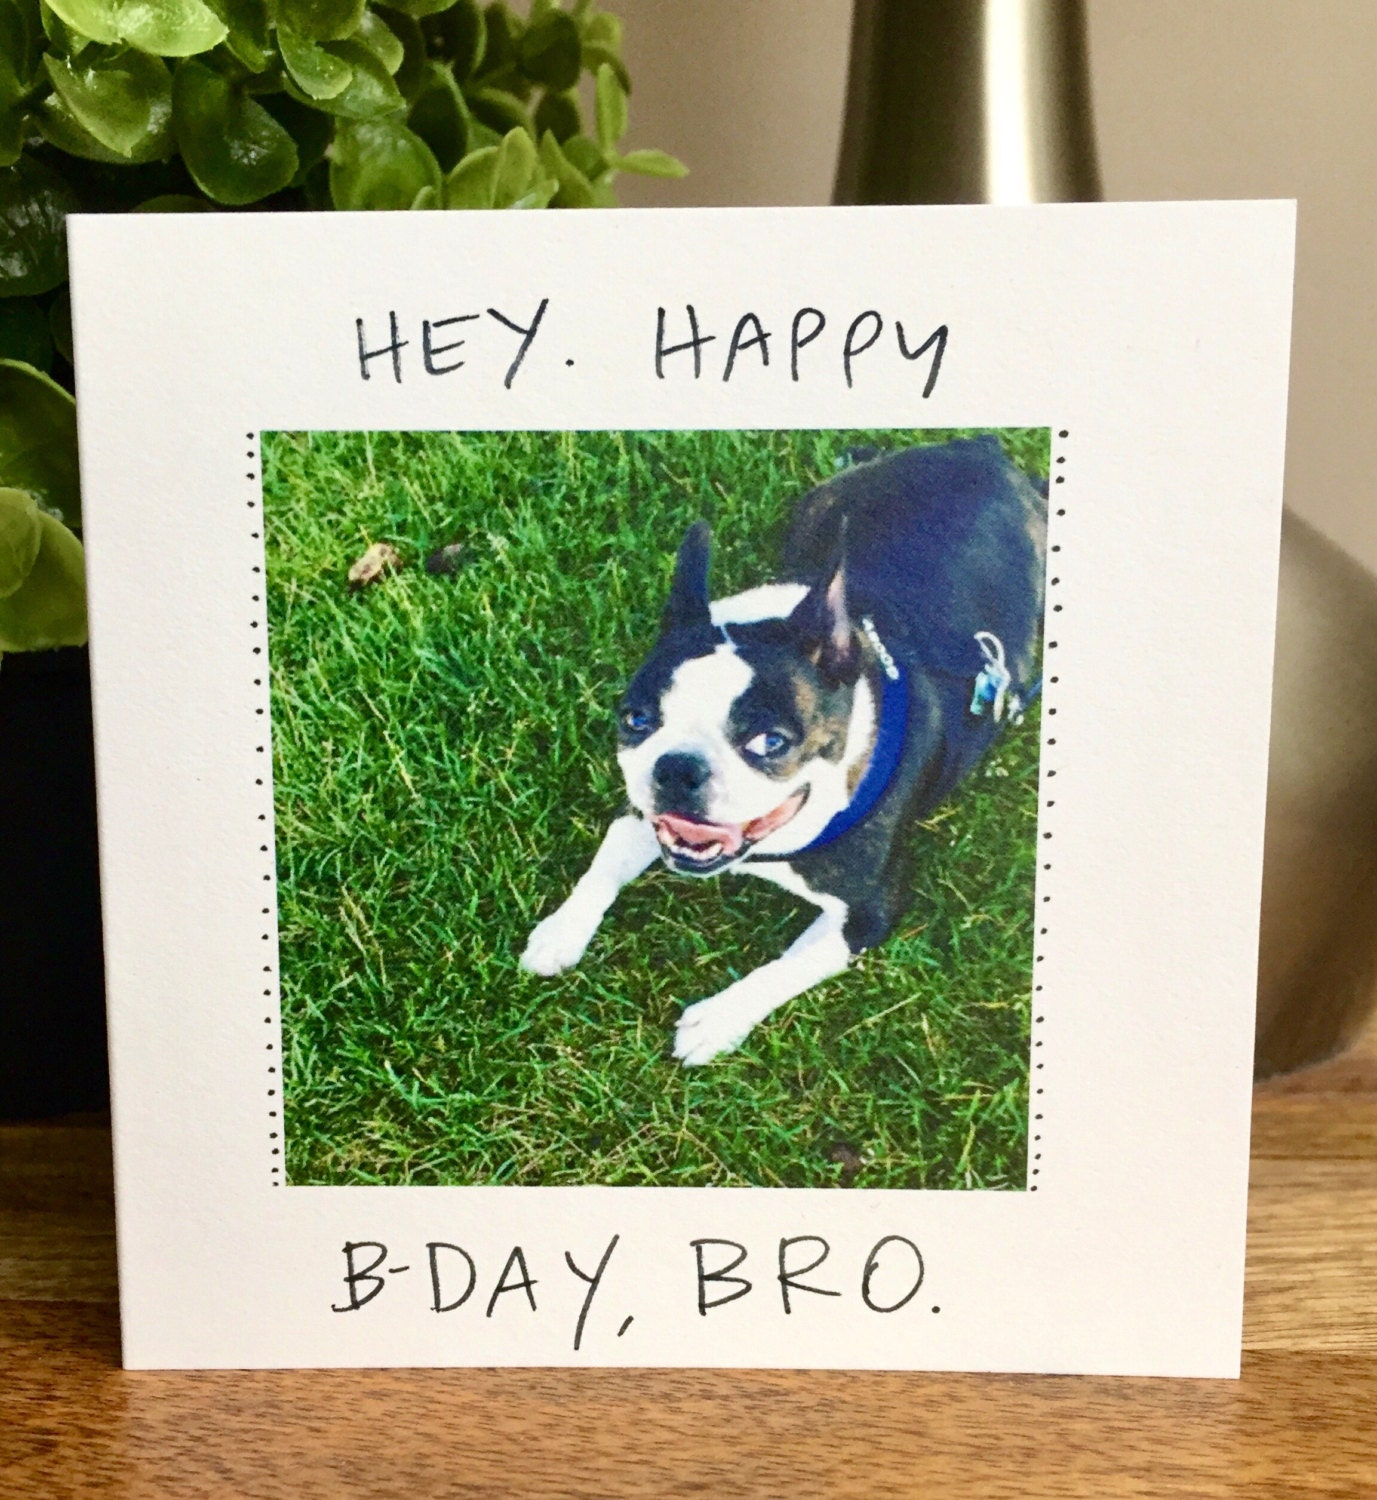 Birthday card unique birthday card funny happy birthday birthday card unique birthday card funny happy birthday handwritten boston terrier card for him funny brother birthday happy bday bro bookmarktalkfo Image collections